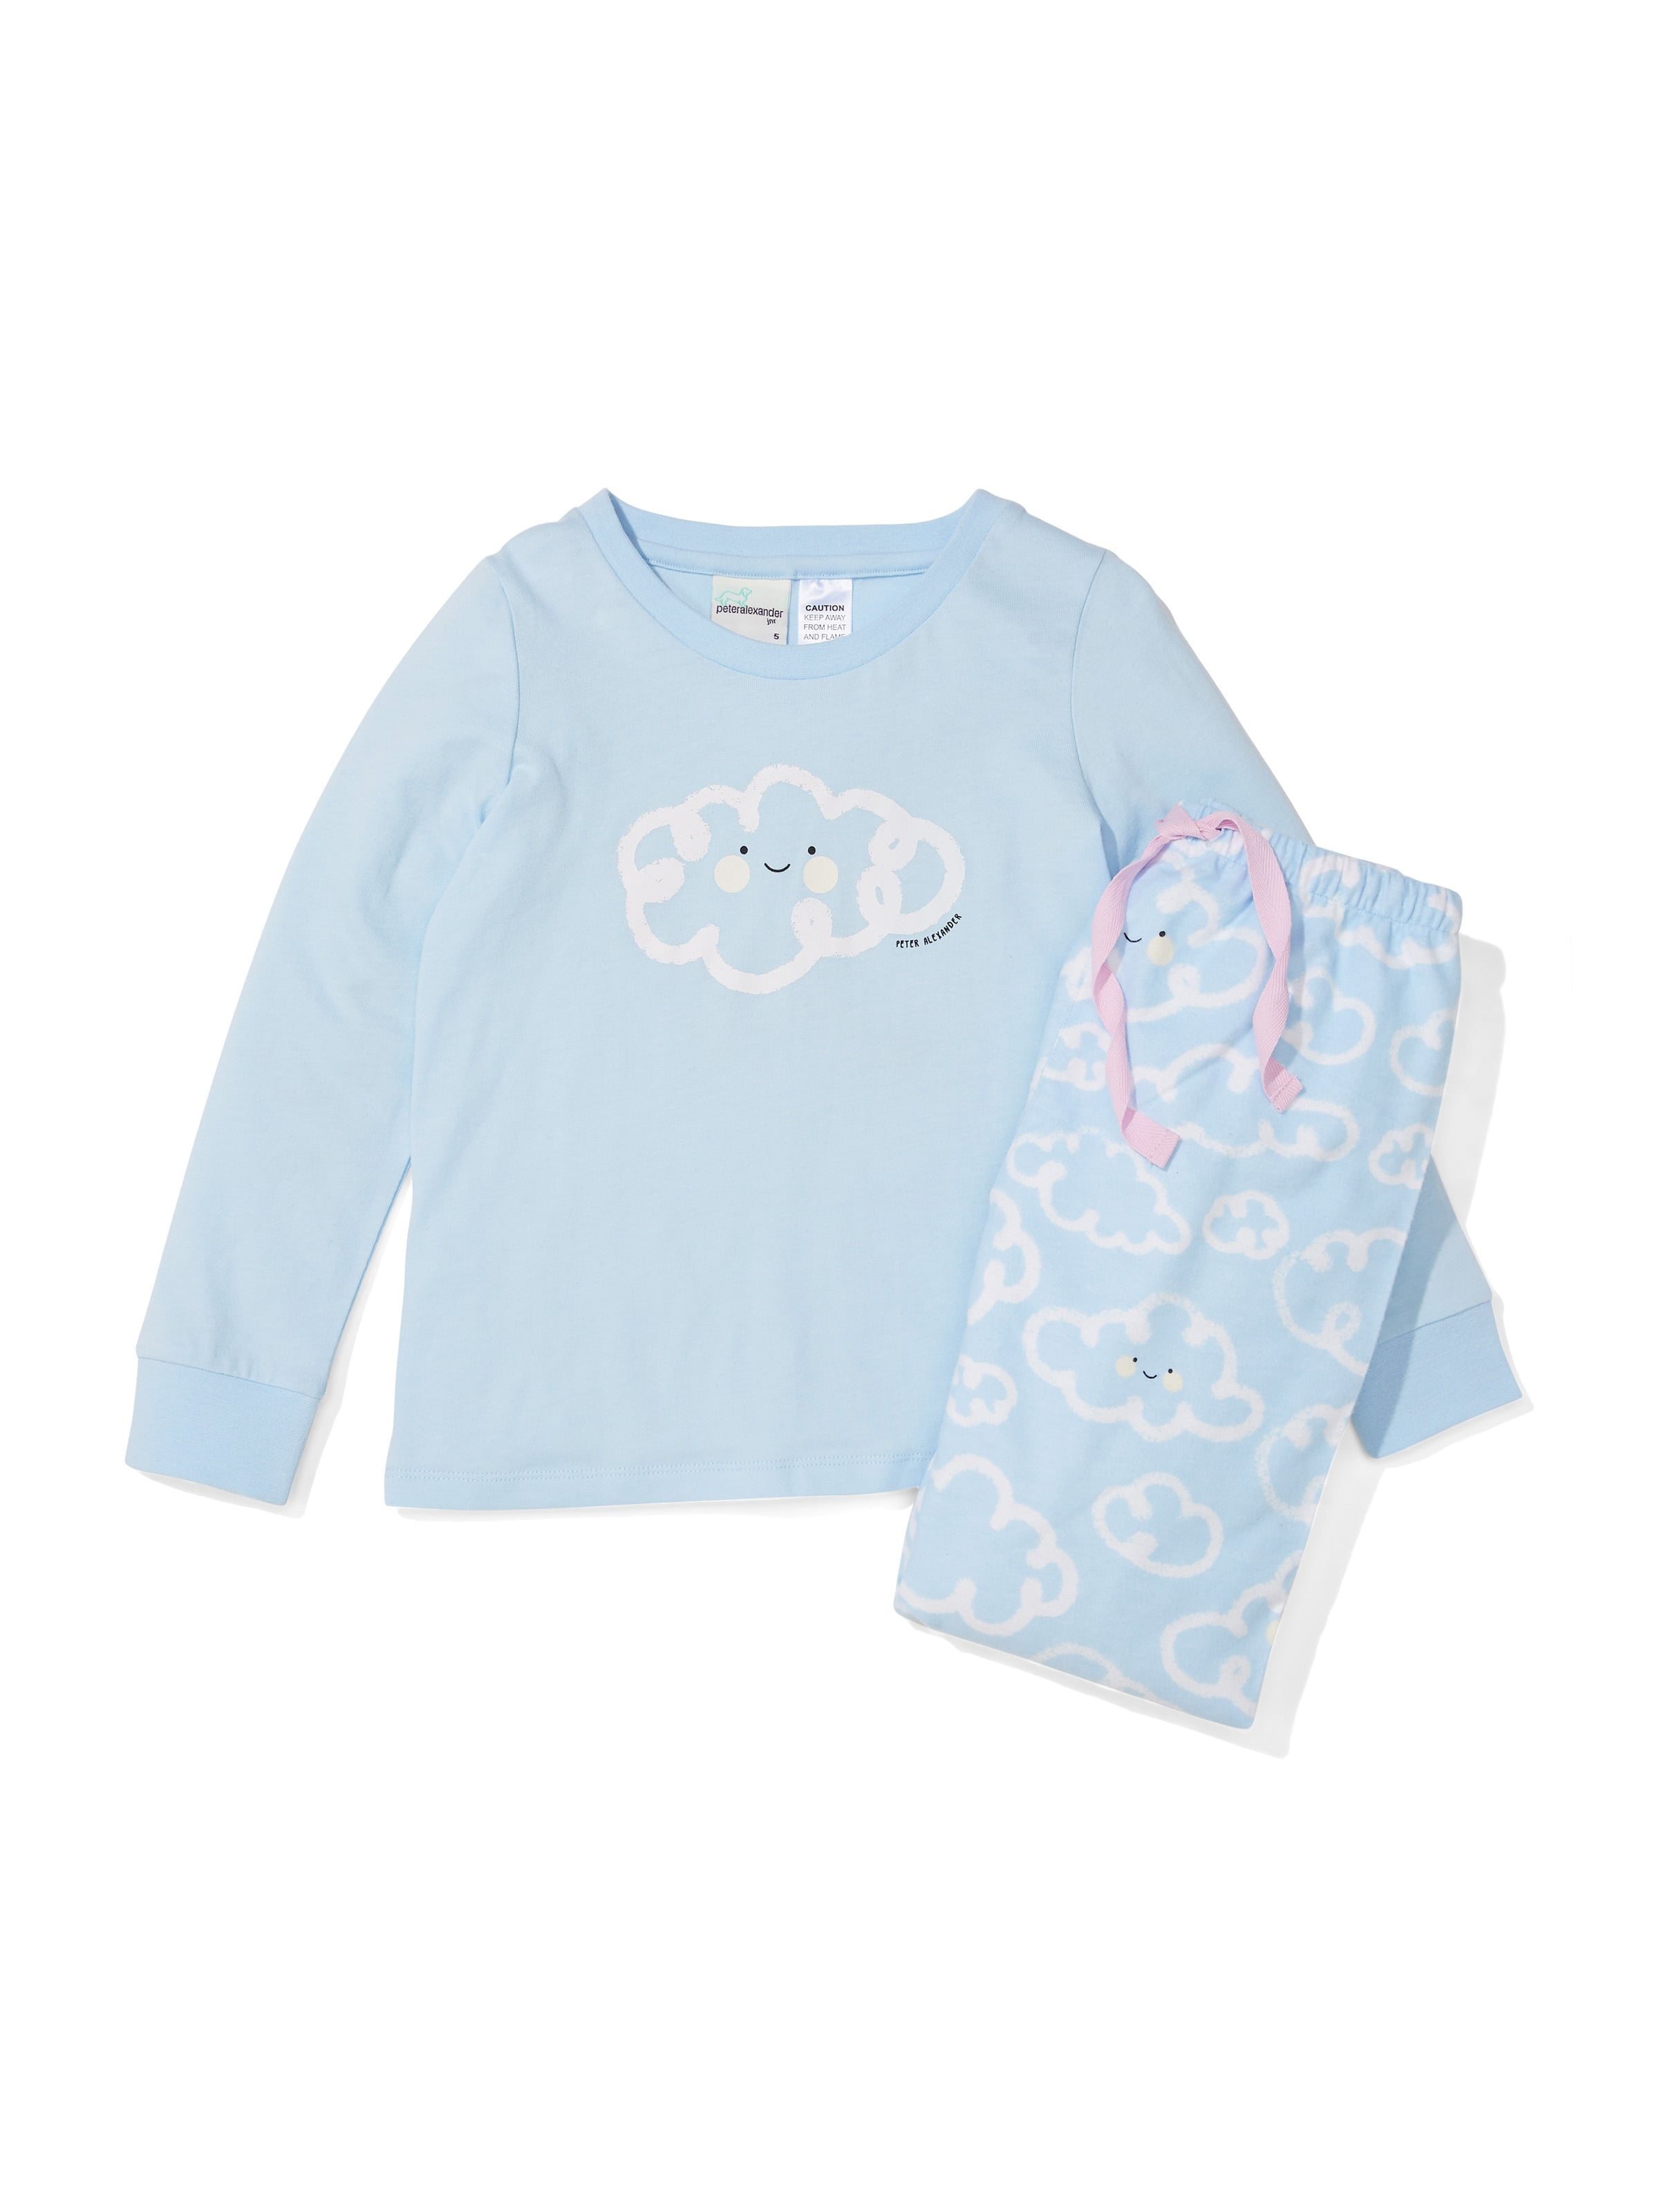 Jnr Girls Cloud Flannelette Pj Set